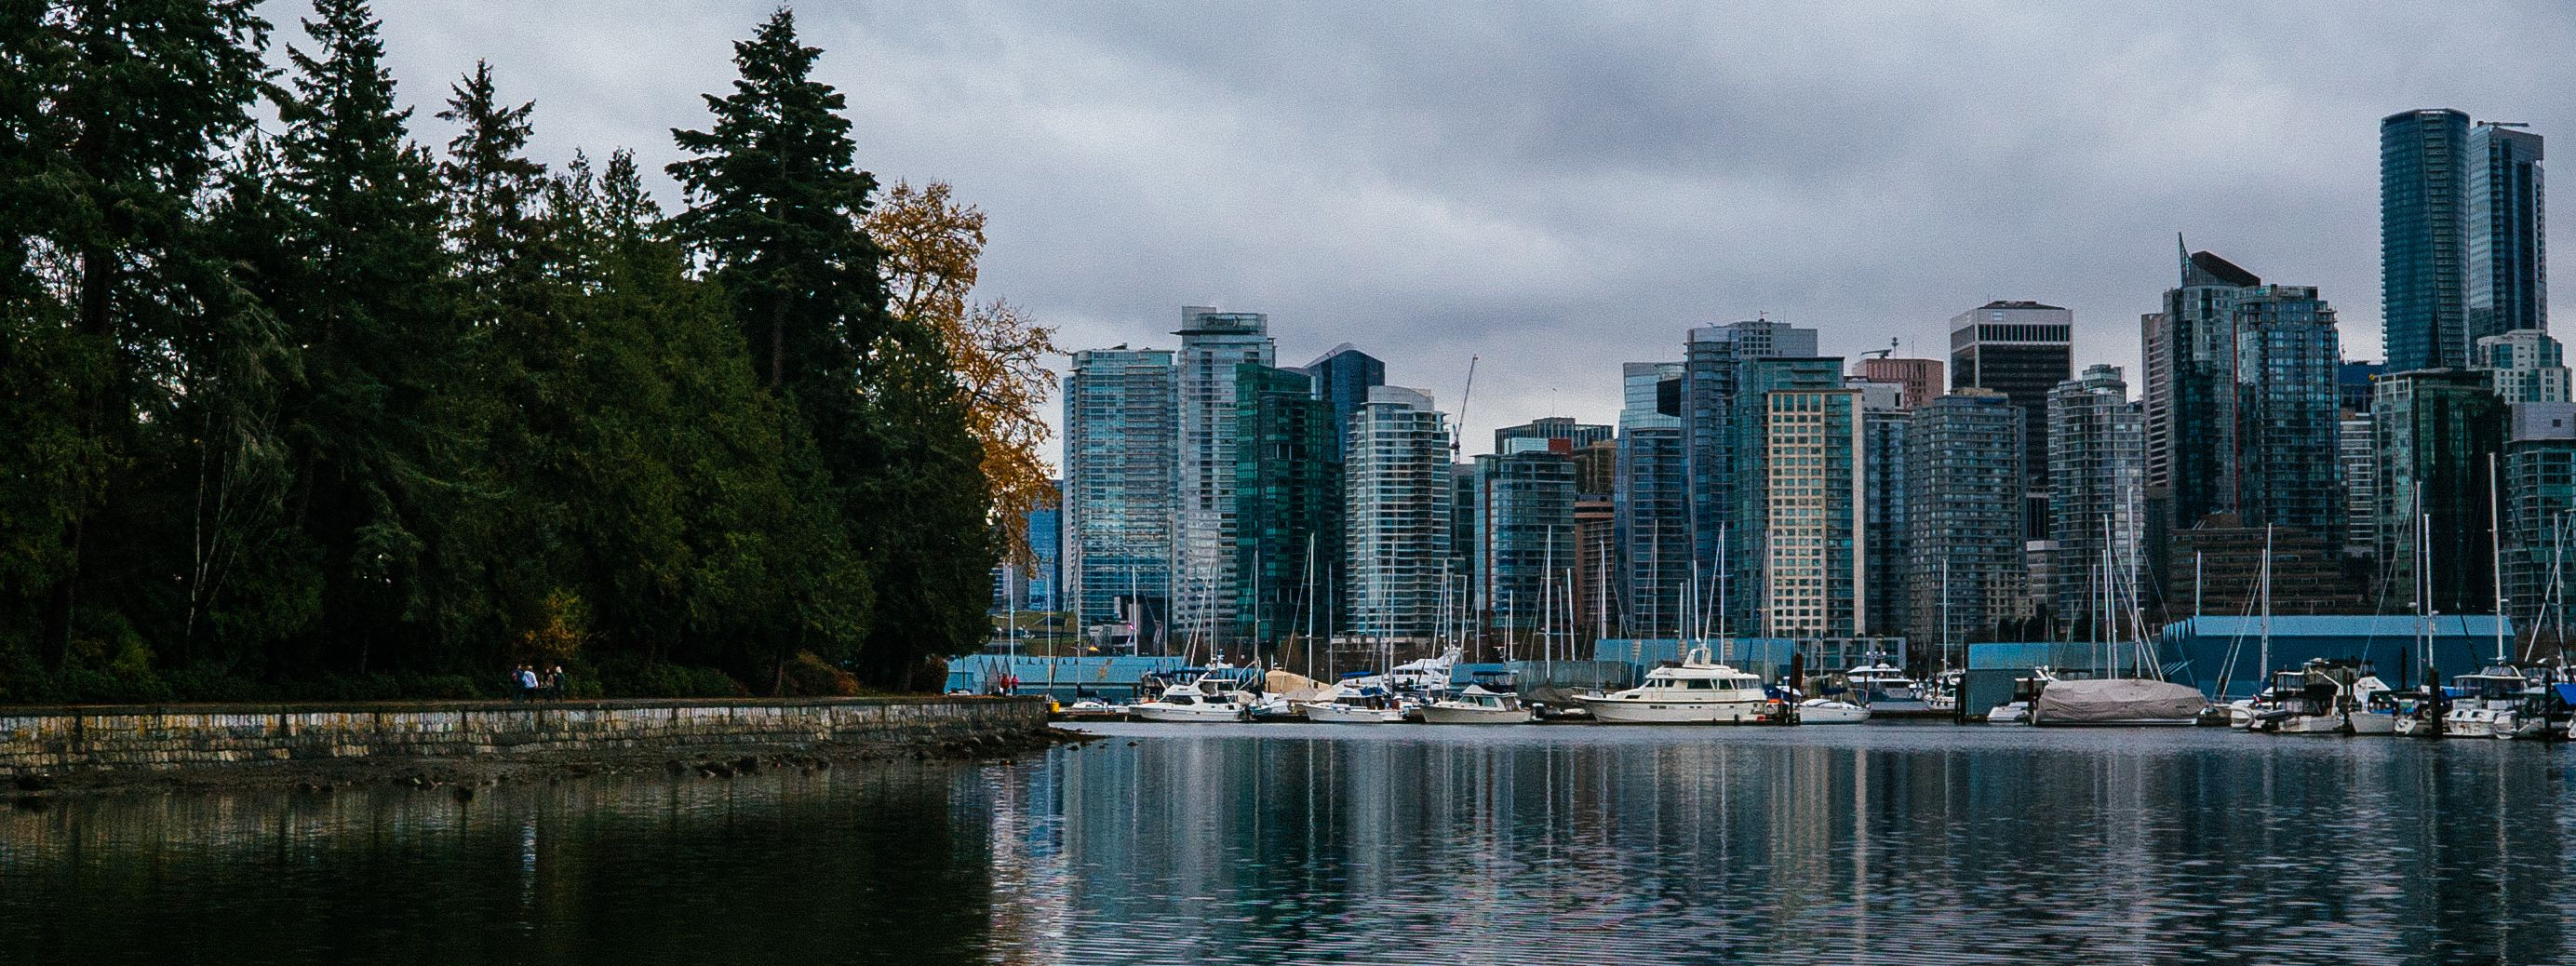 Monthly Car Rentals >> The Weather and Climate in Vancouver, British Columbia